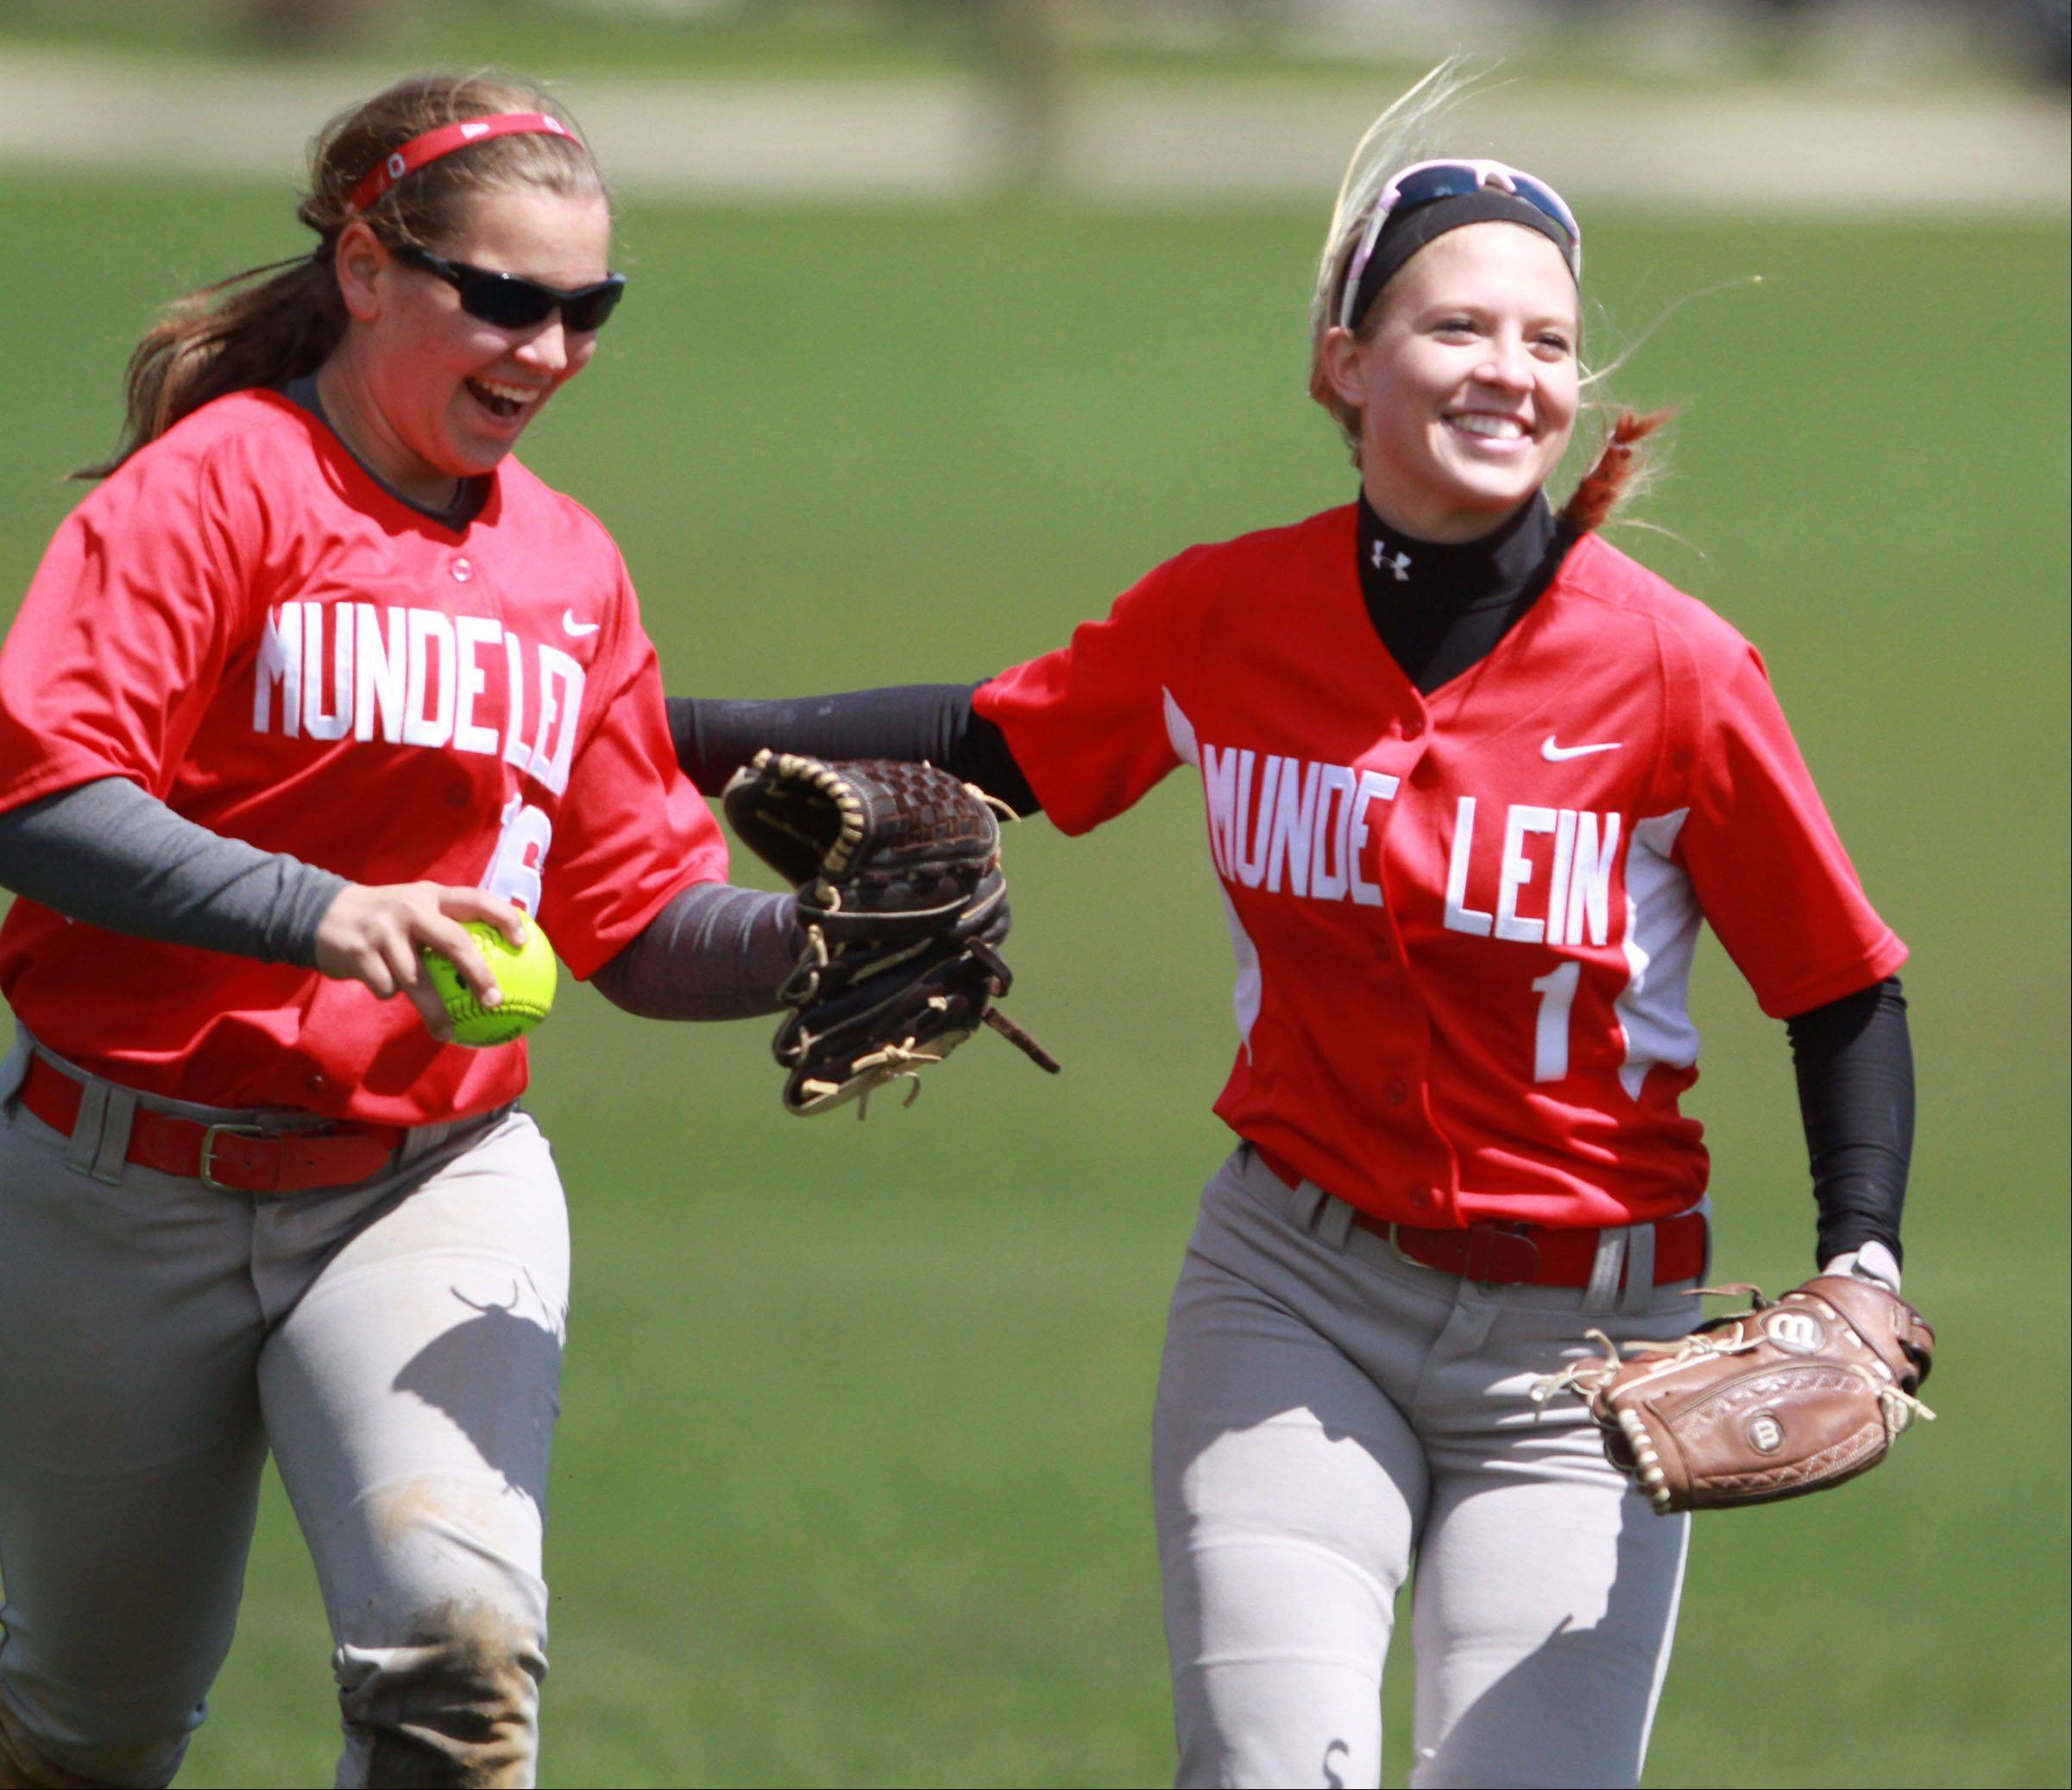 Mundelein's Hannah Bulgart, left, gets kudos from teammate Chloe Peterson after making a difficult catch to end the inning against Johnsburg Saturday.